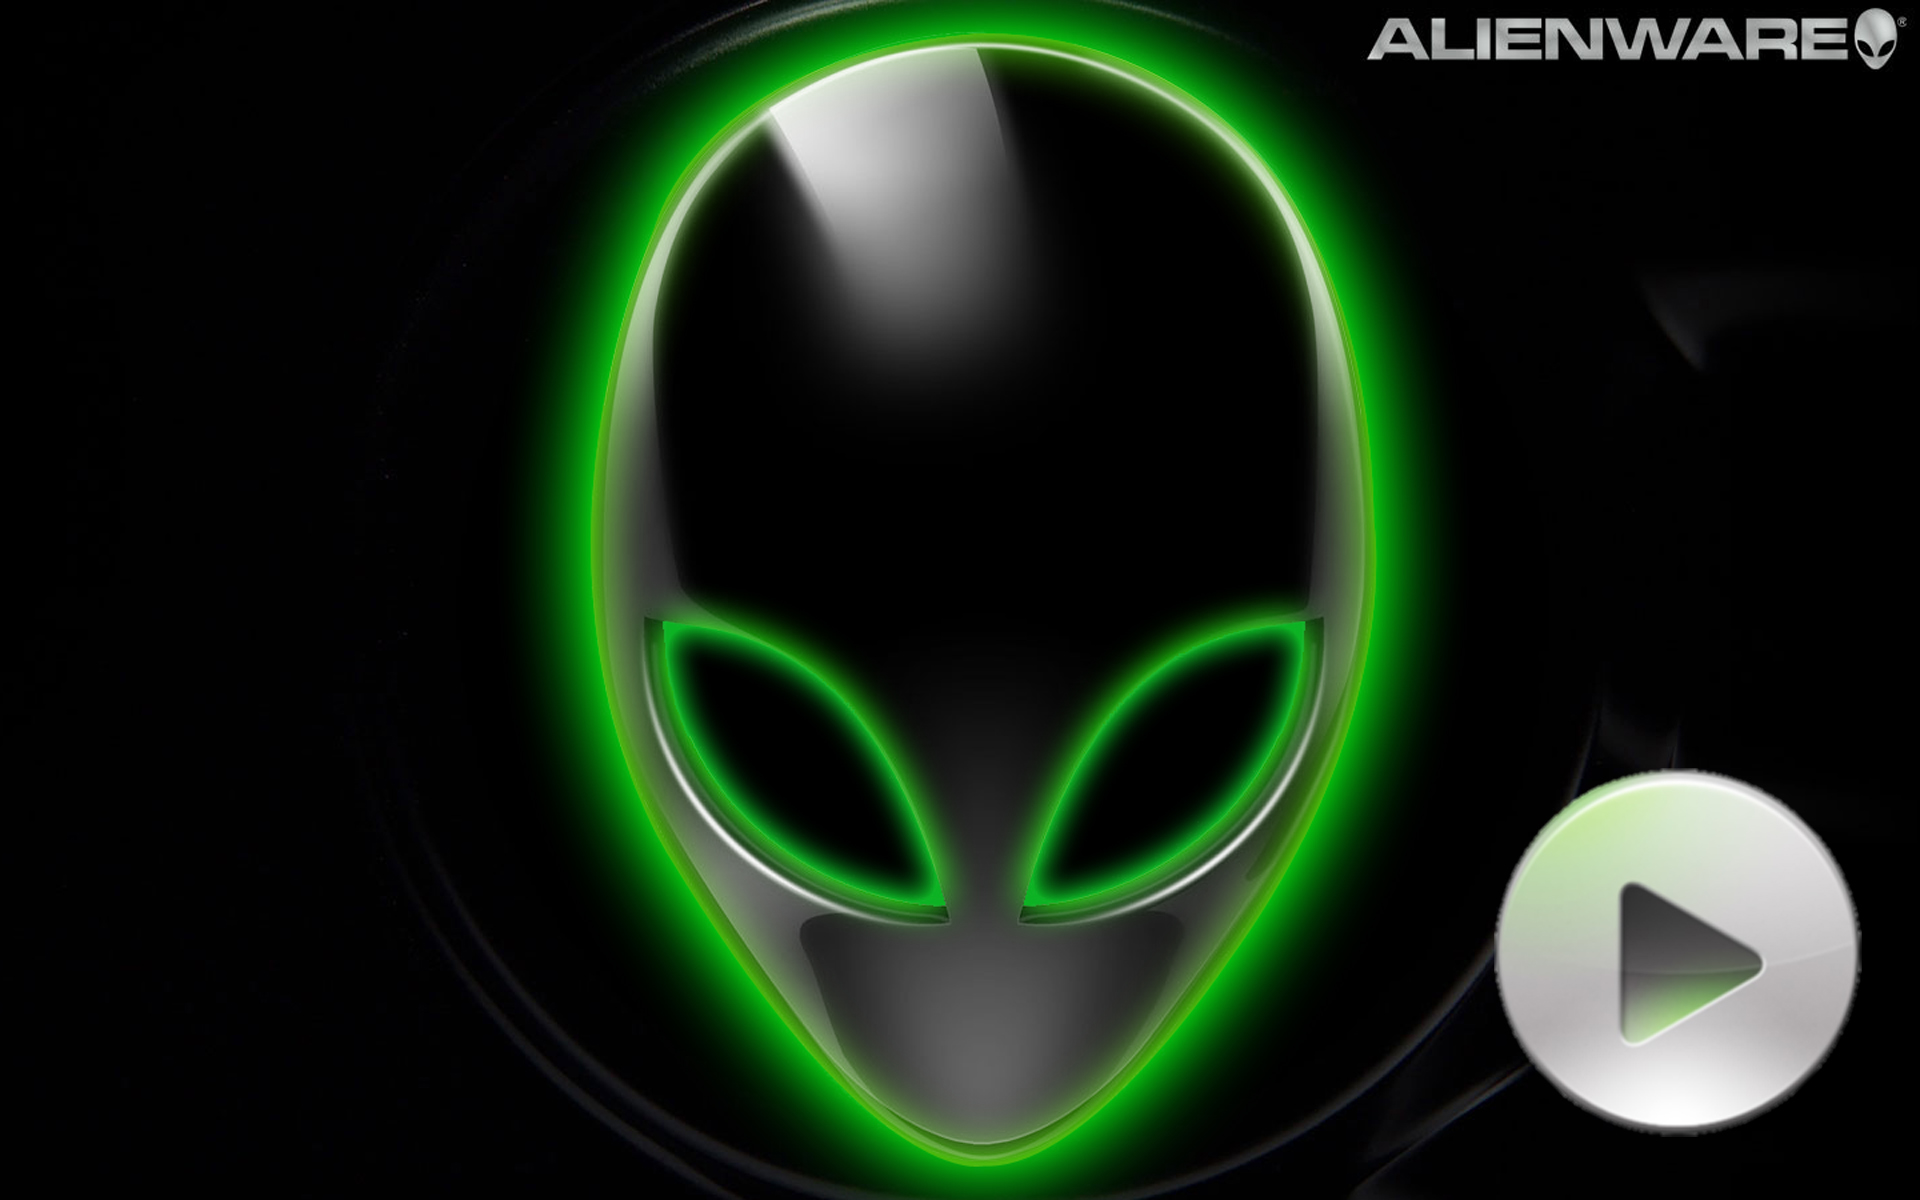 alienware themes for vista download Top windows 7 themes 1920x1200